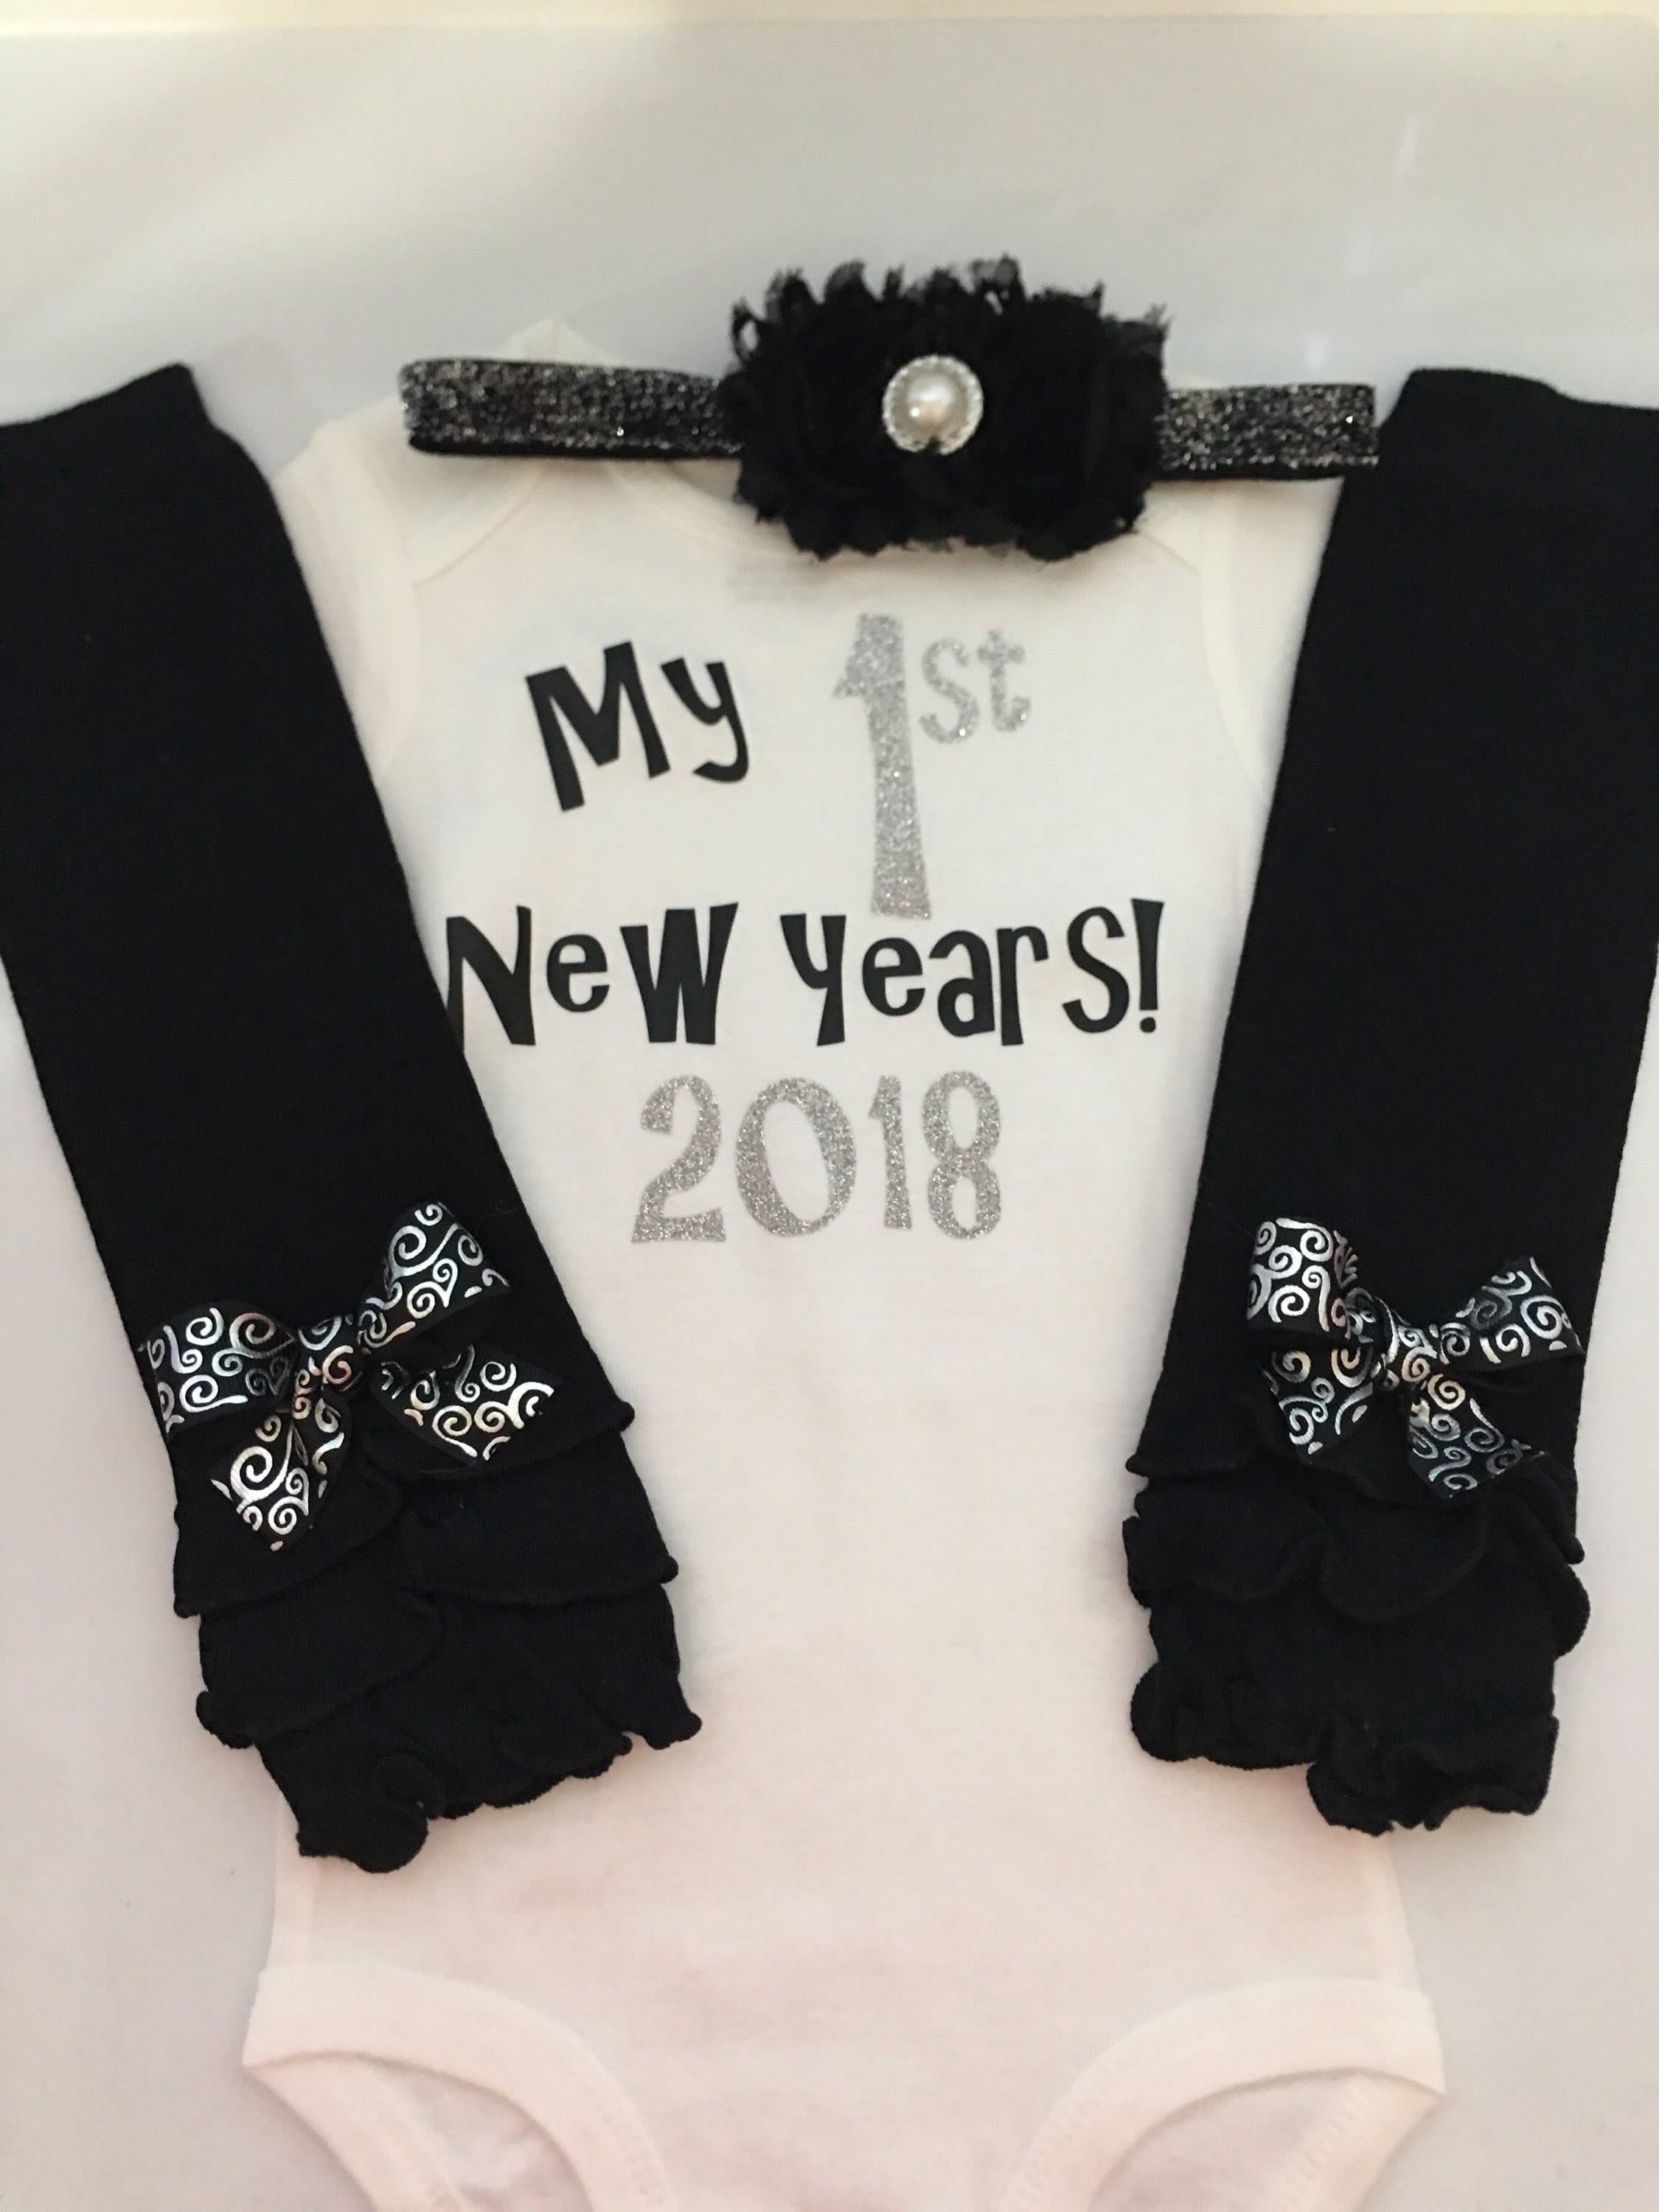 686ac089ef55 ... my first new years outfit - 2019 New years baby outfit - baby girl  photo prop. gallery photo ...